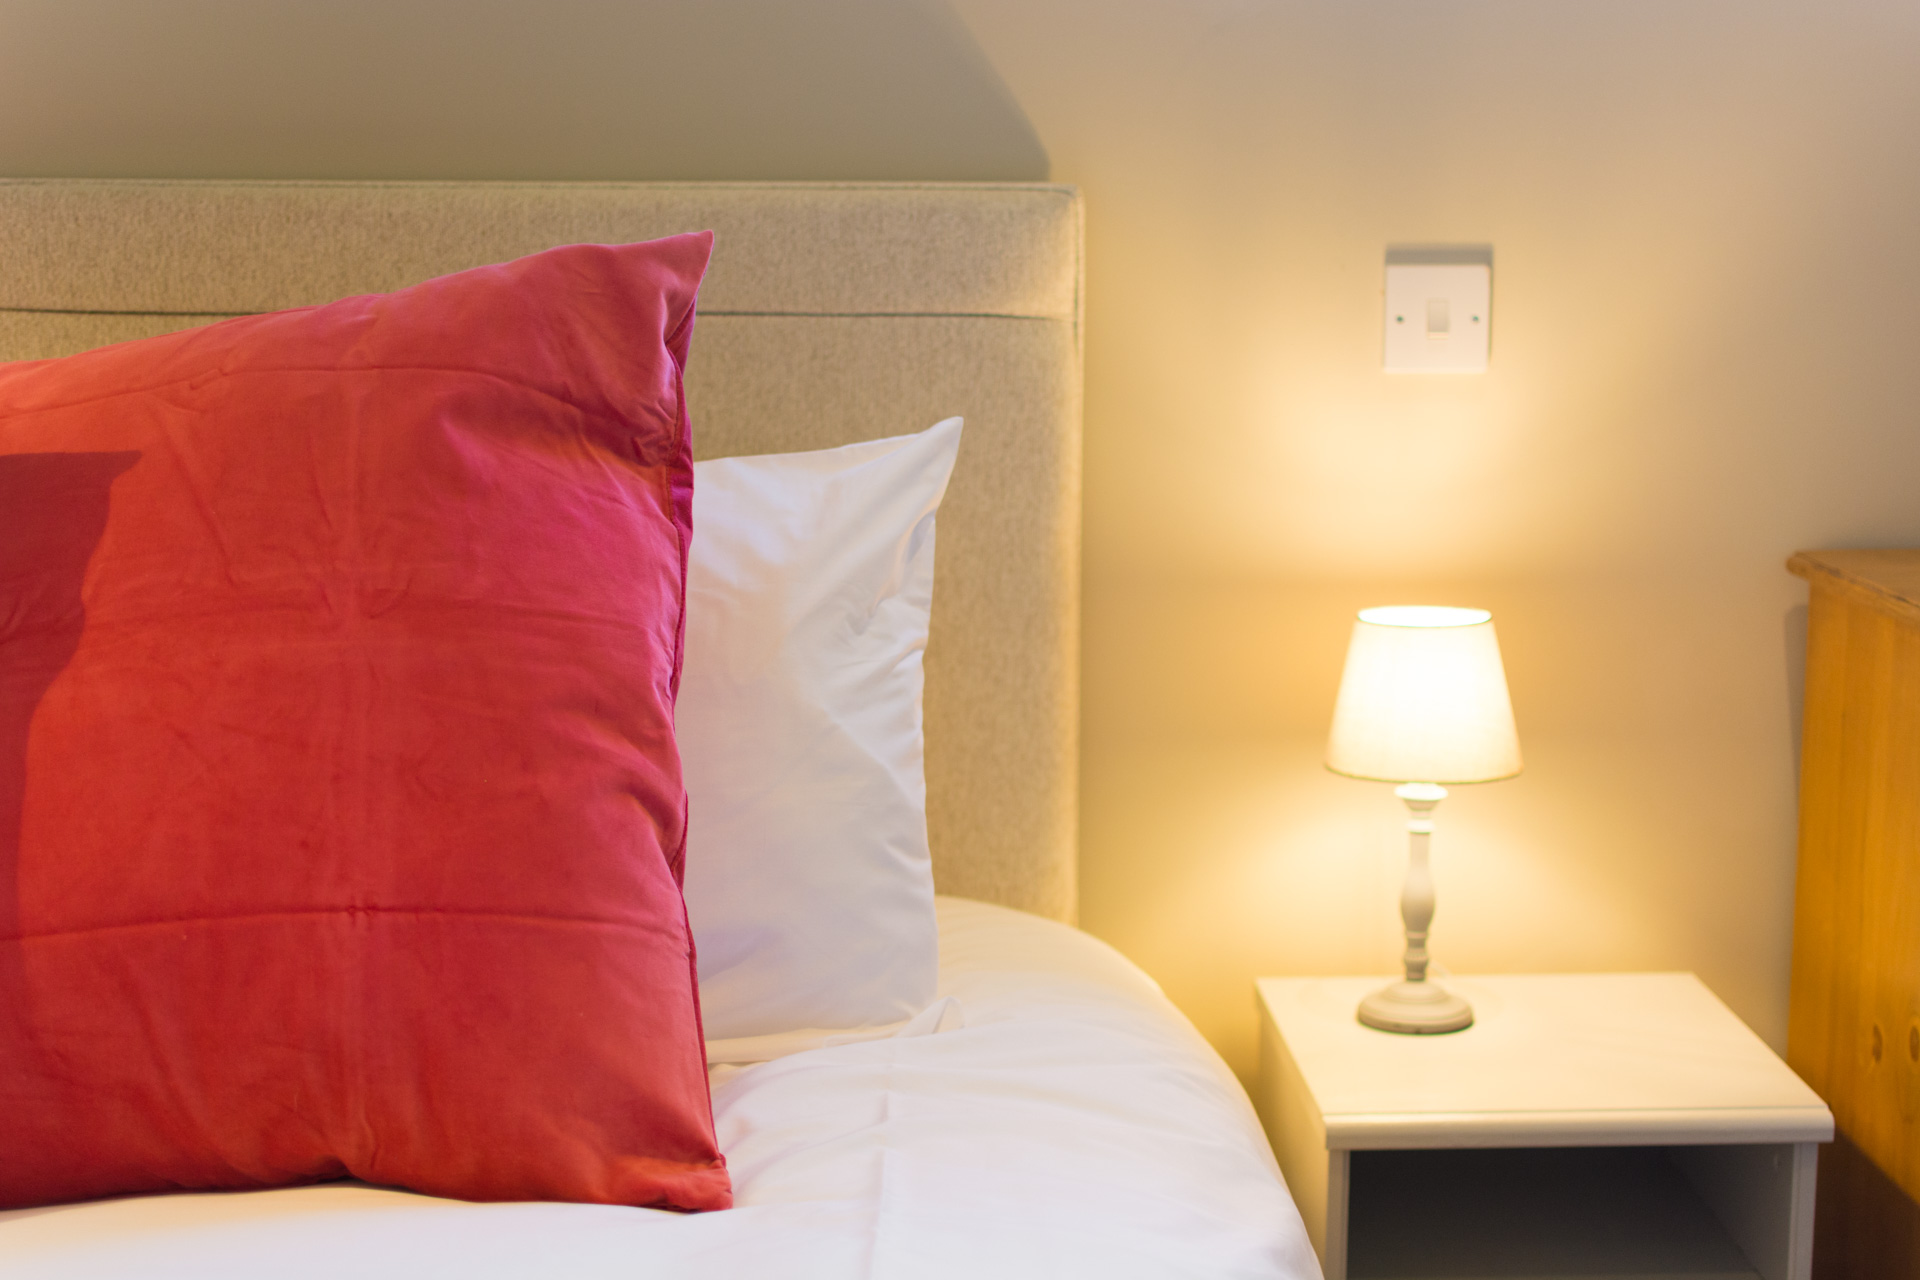 Close up photo of Super-king bedroom pillows and night light.